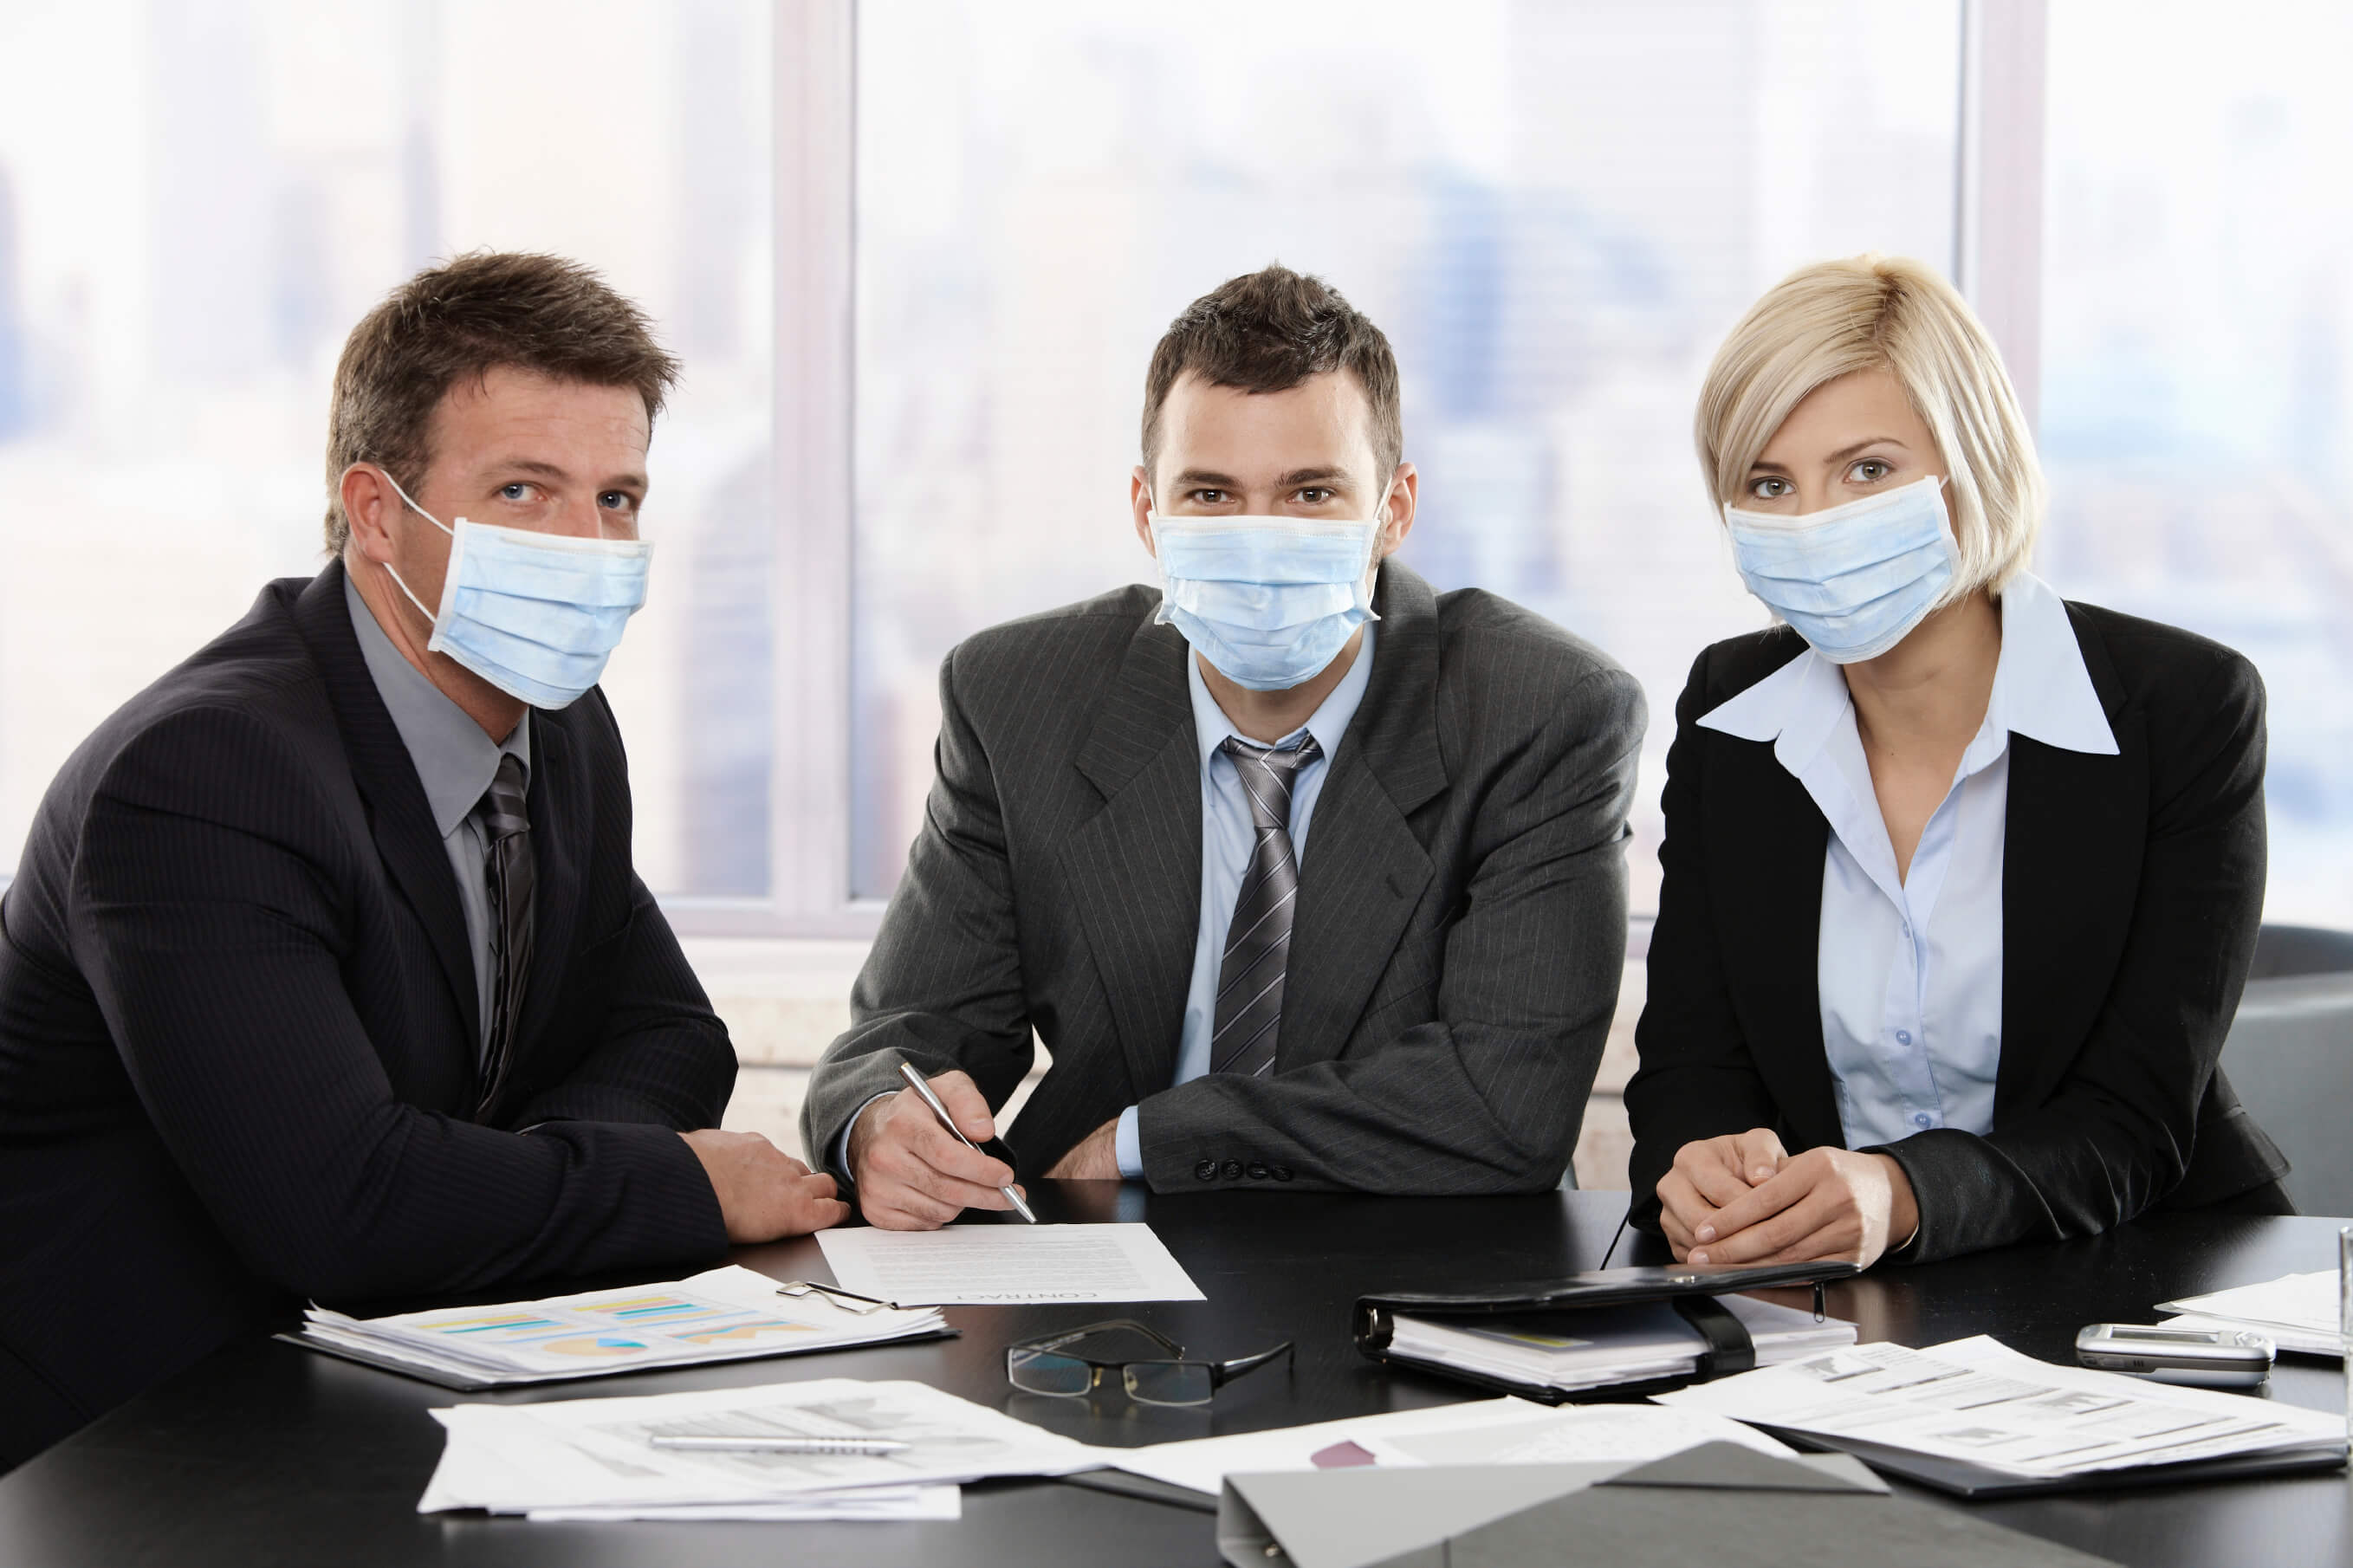 Prevent spreading germs around in the office